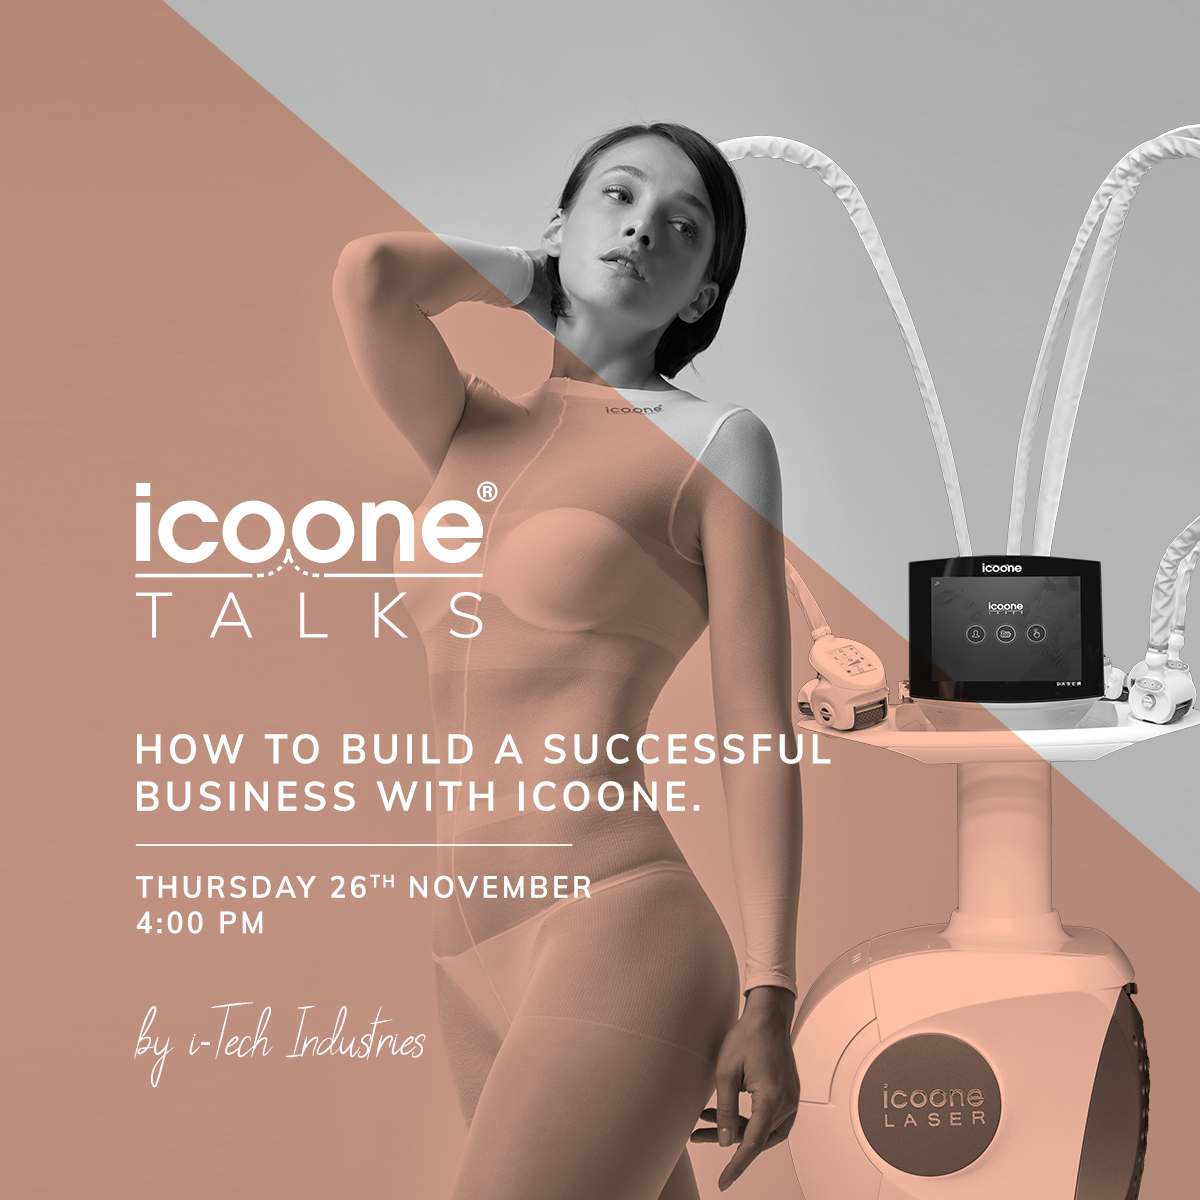 How to build a successful business with icoone